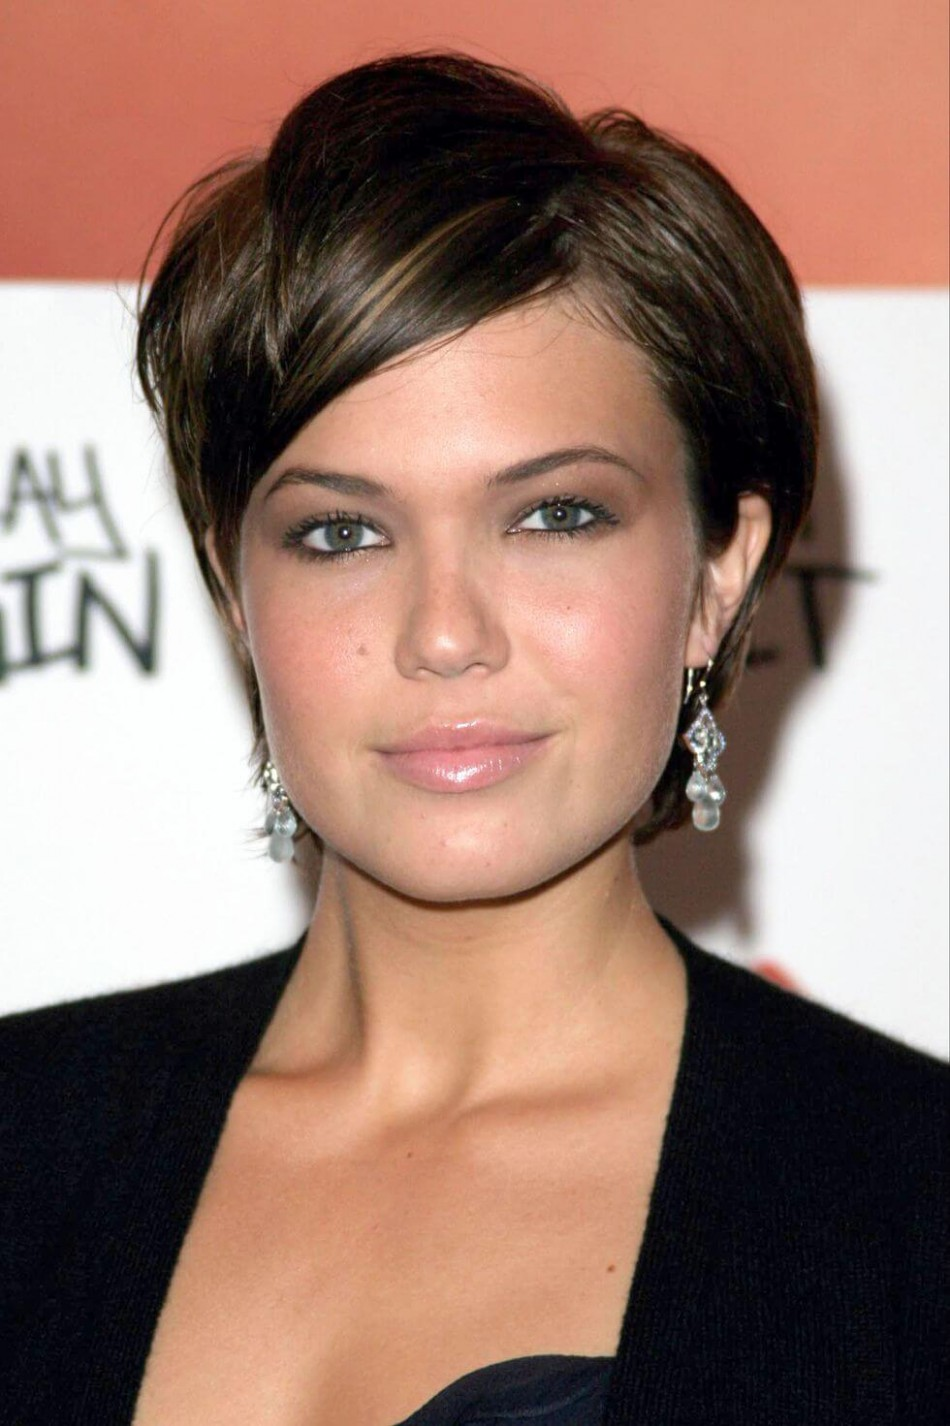 Very Short Pixie Haircuts for Round Faces - 11+